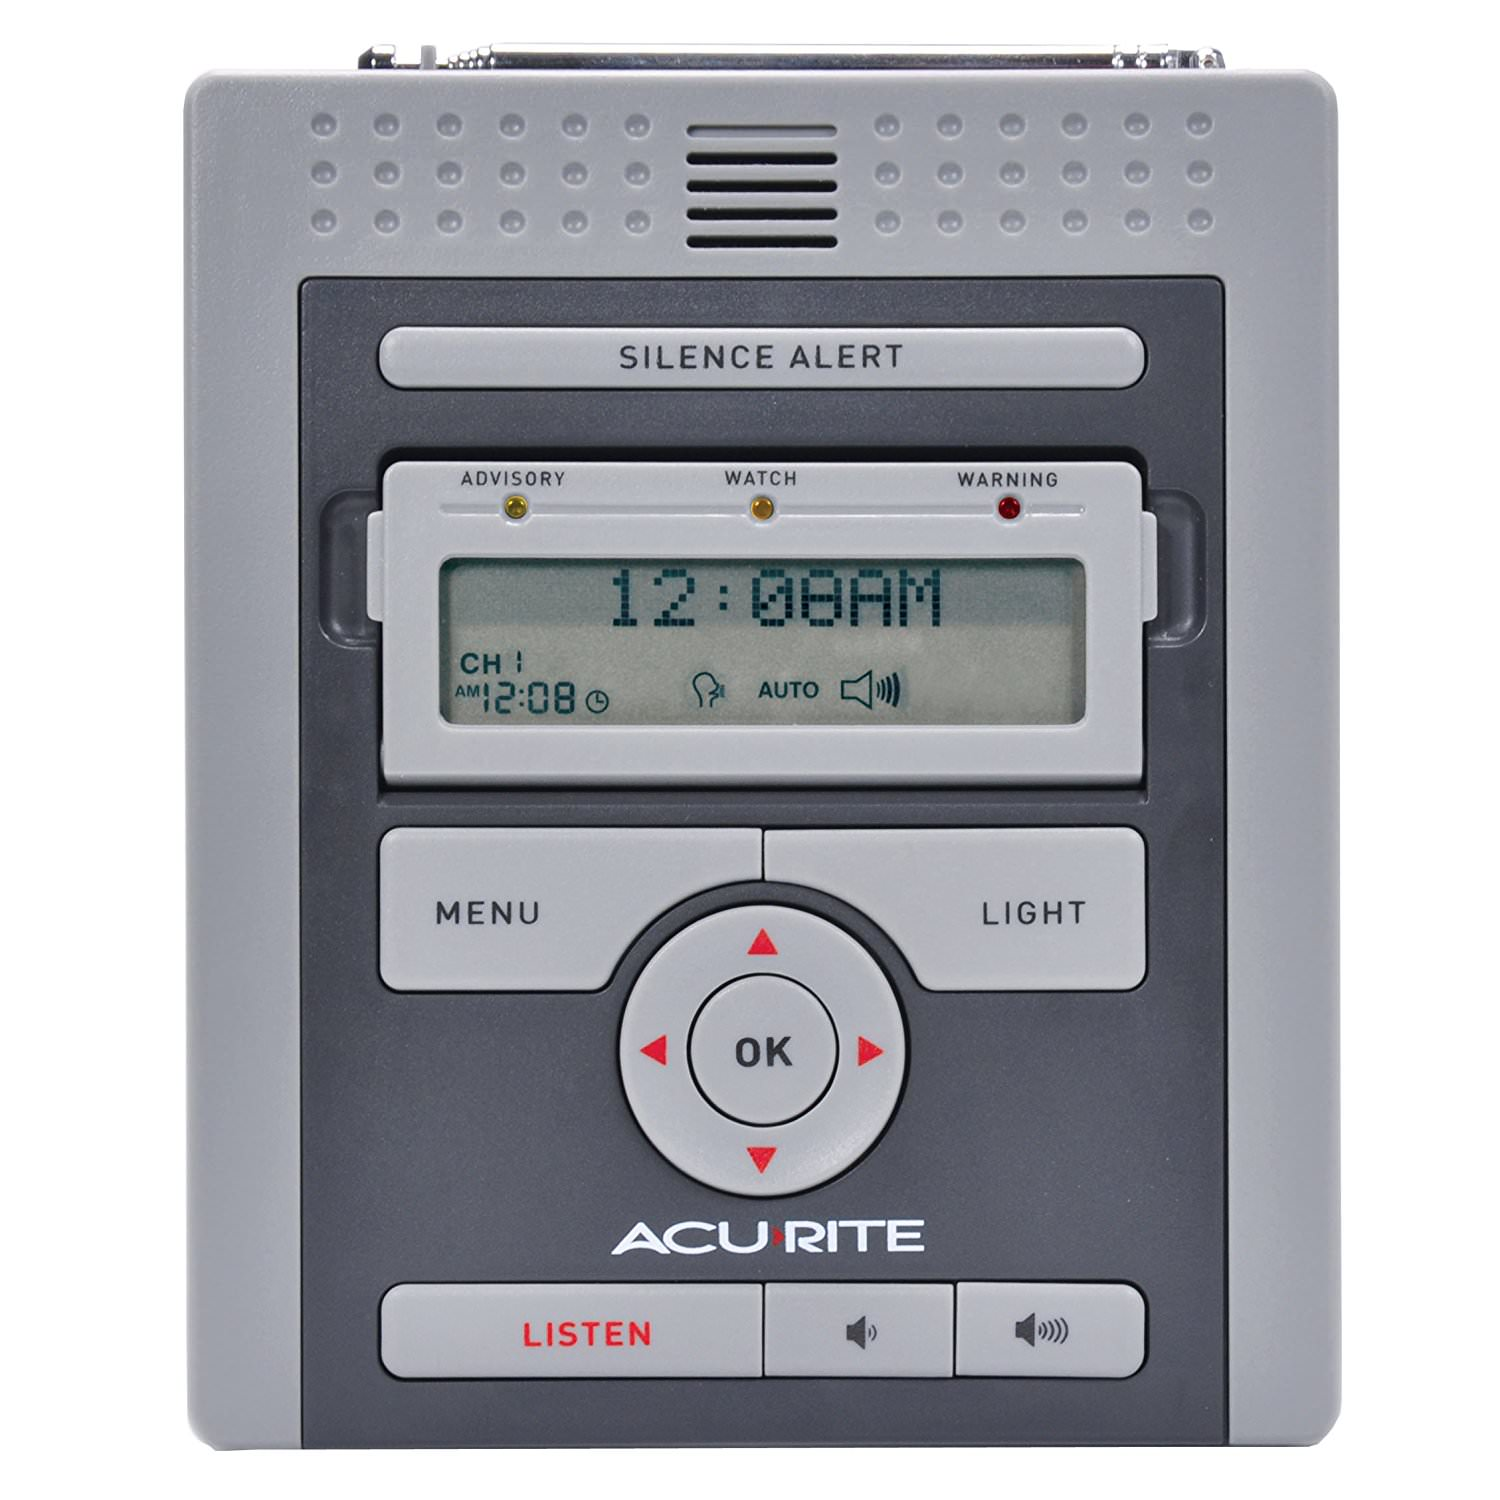 NOAA Weather Radio with S.A.M.E.